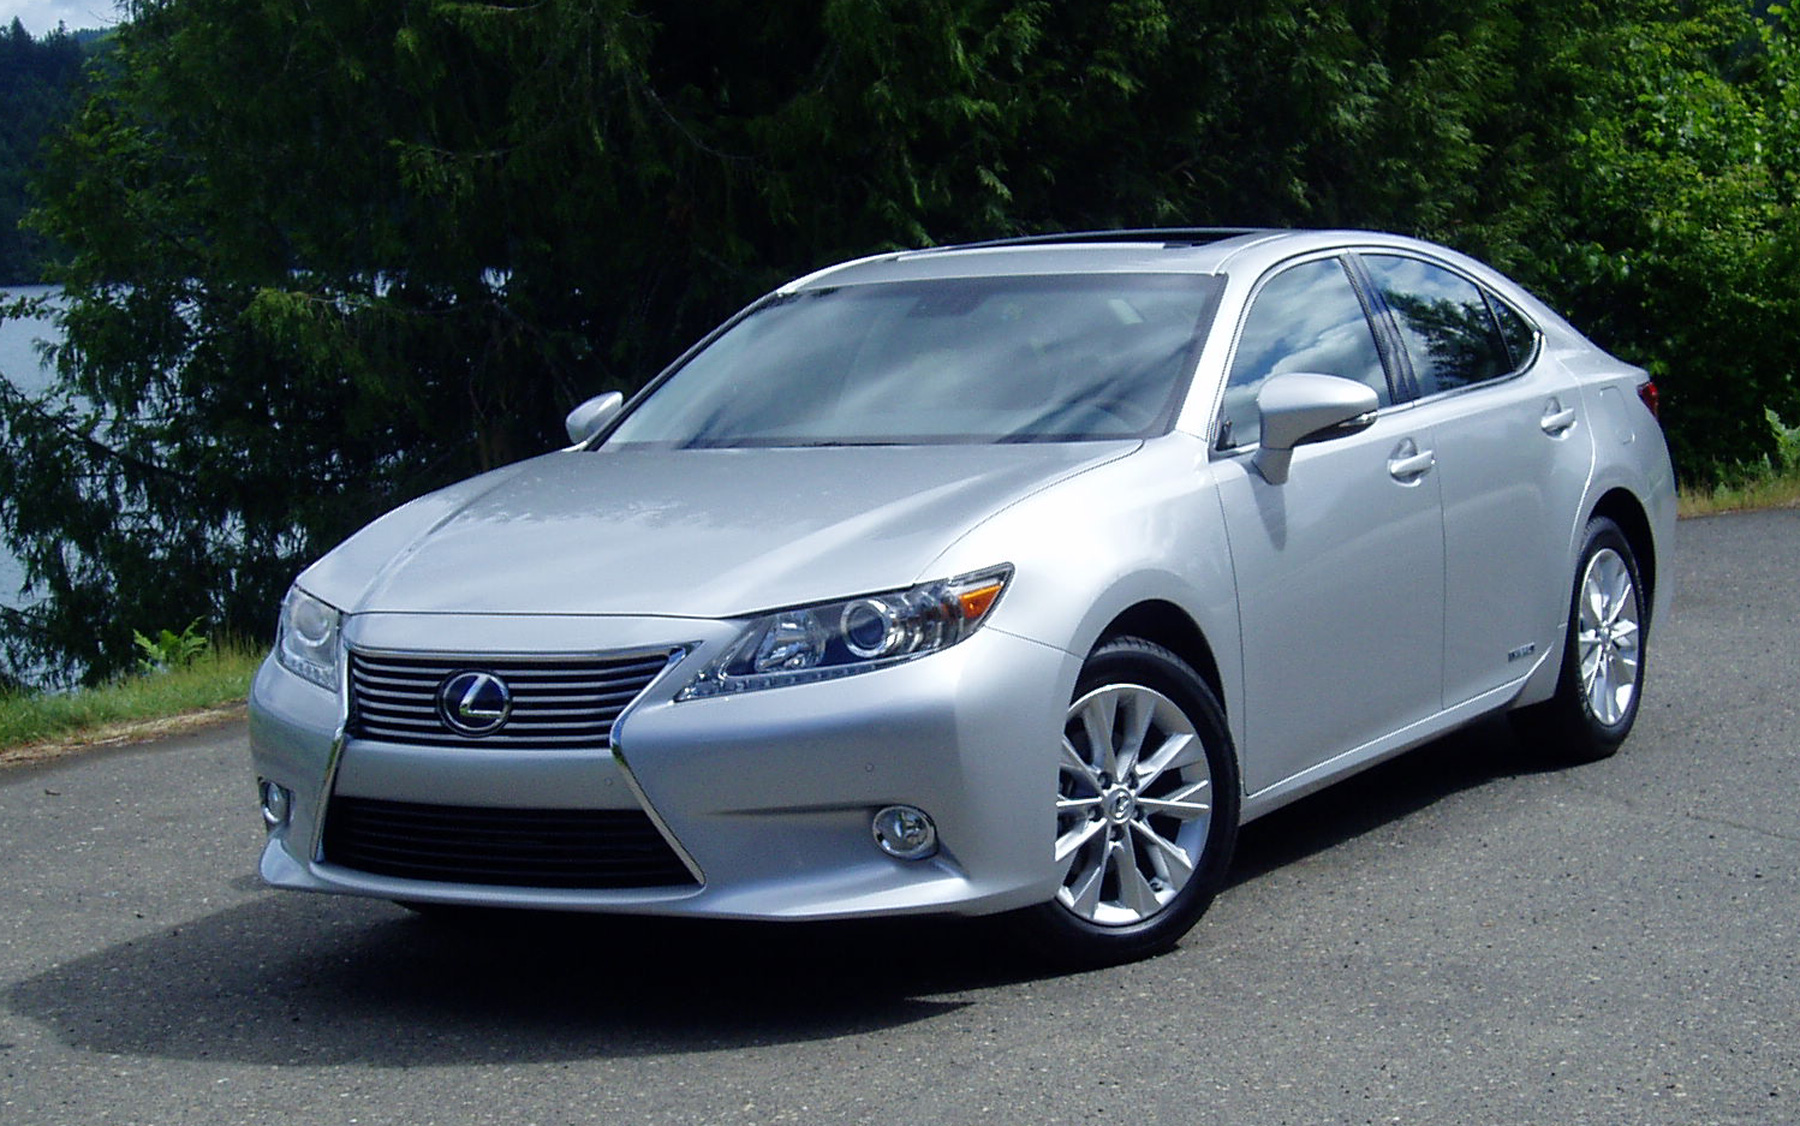 Test Drive 2013 Lexus ES350 & ES300h Sedan – Our Auto Expert